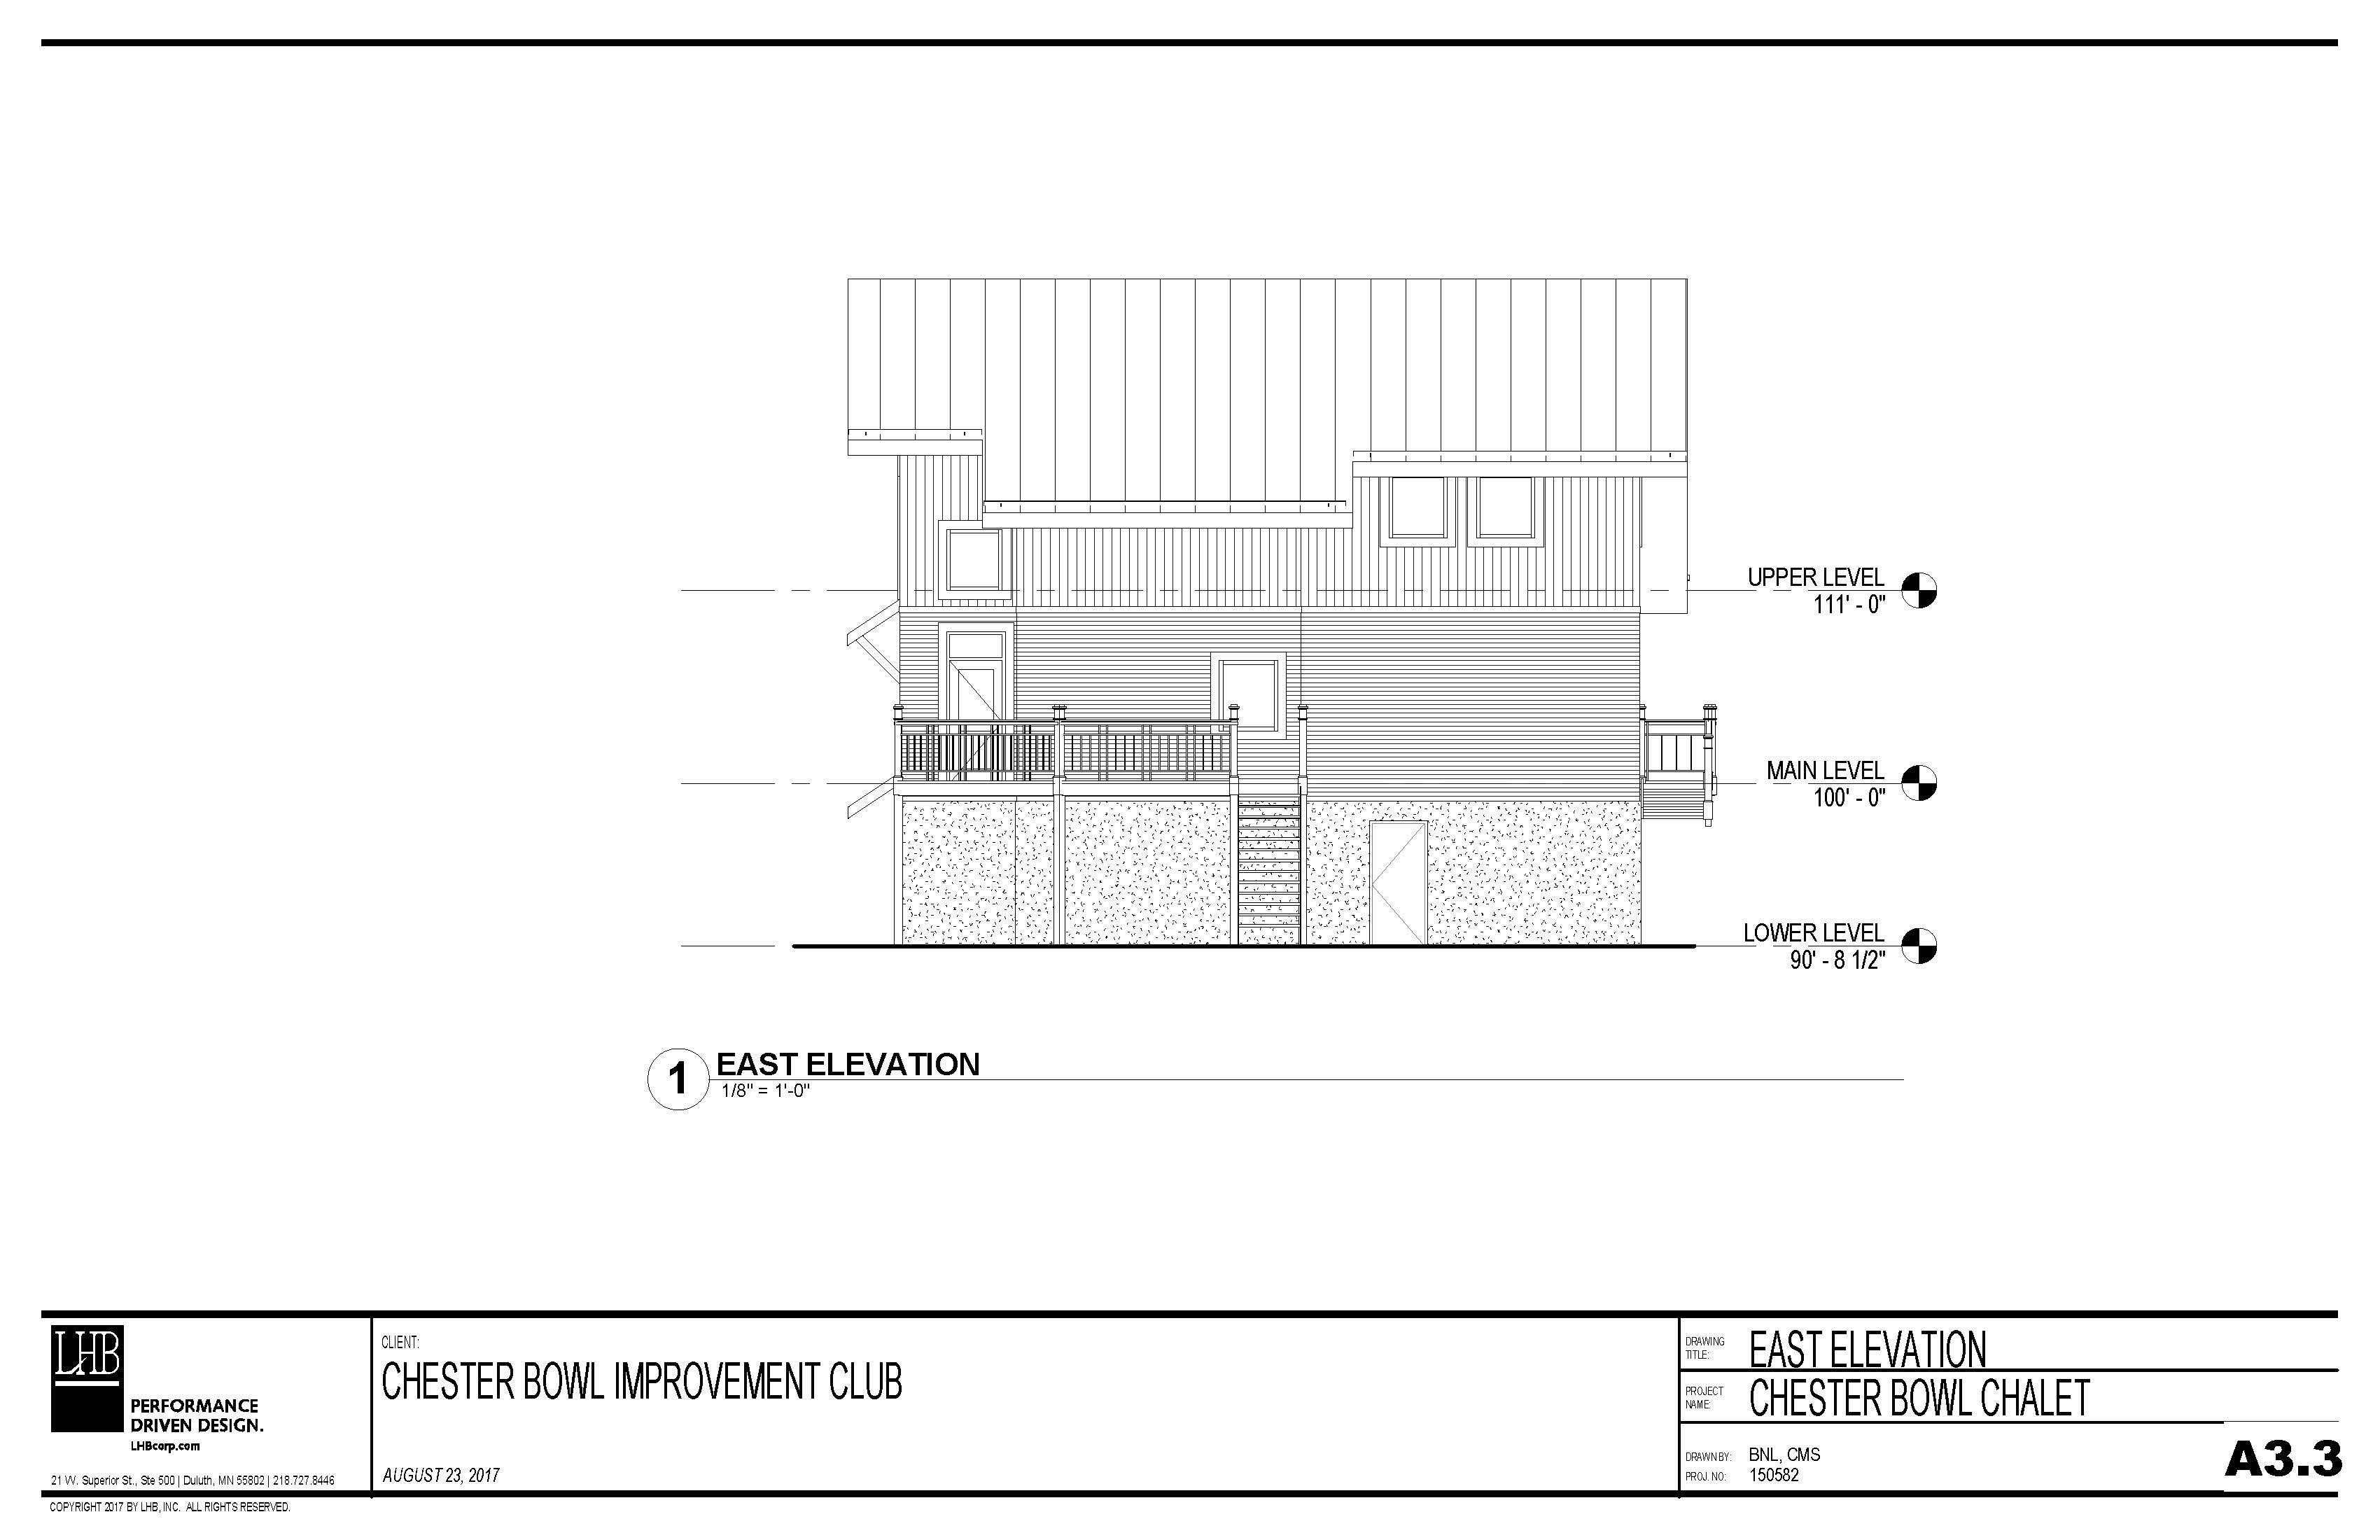 Draft plans for the exterior east elevation of the Thom Storm Chalet.